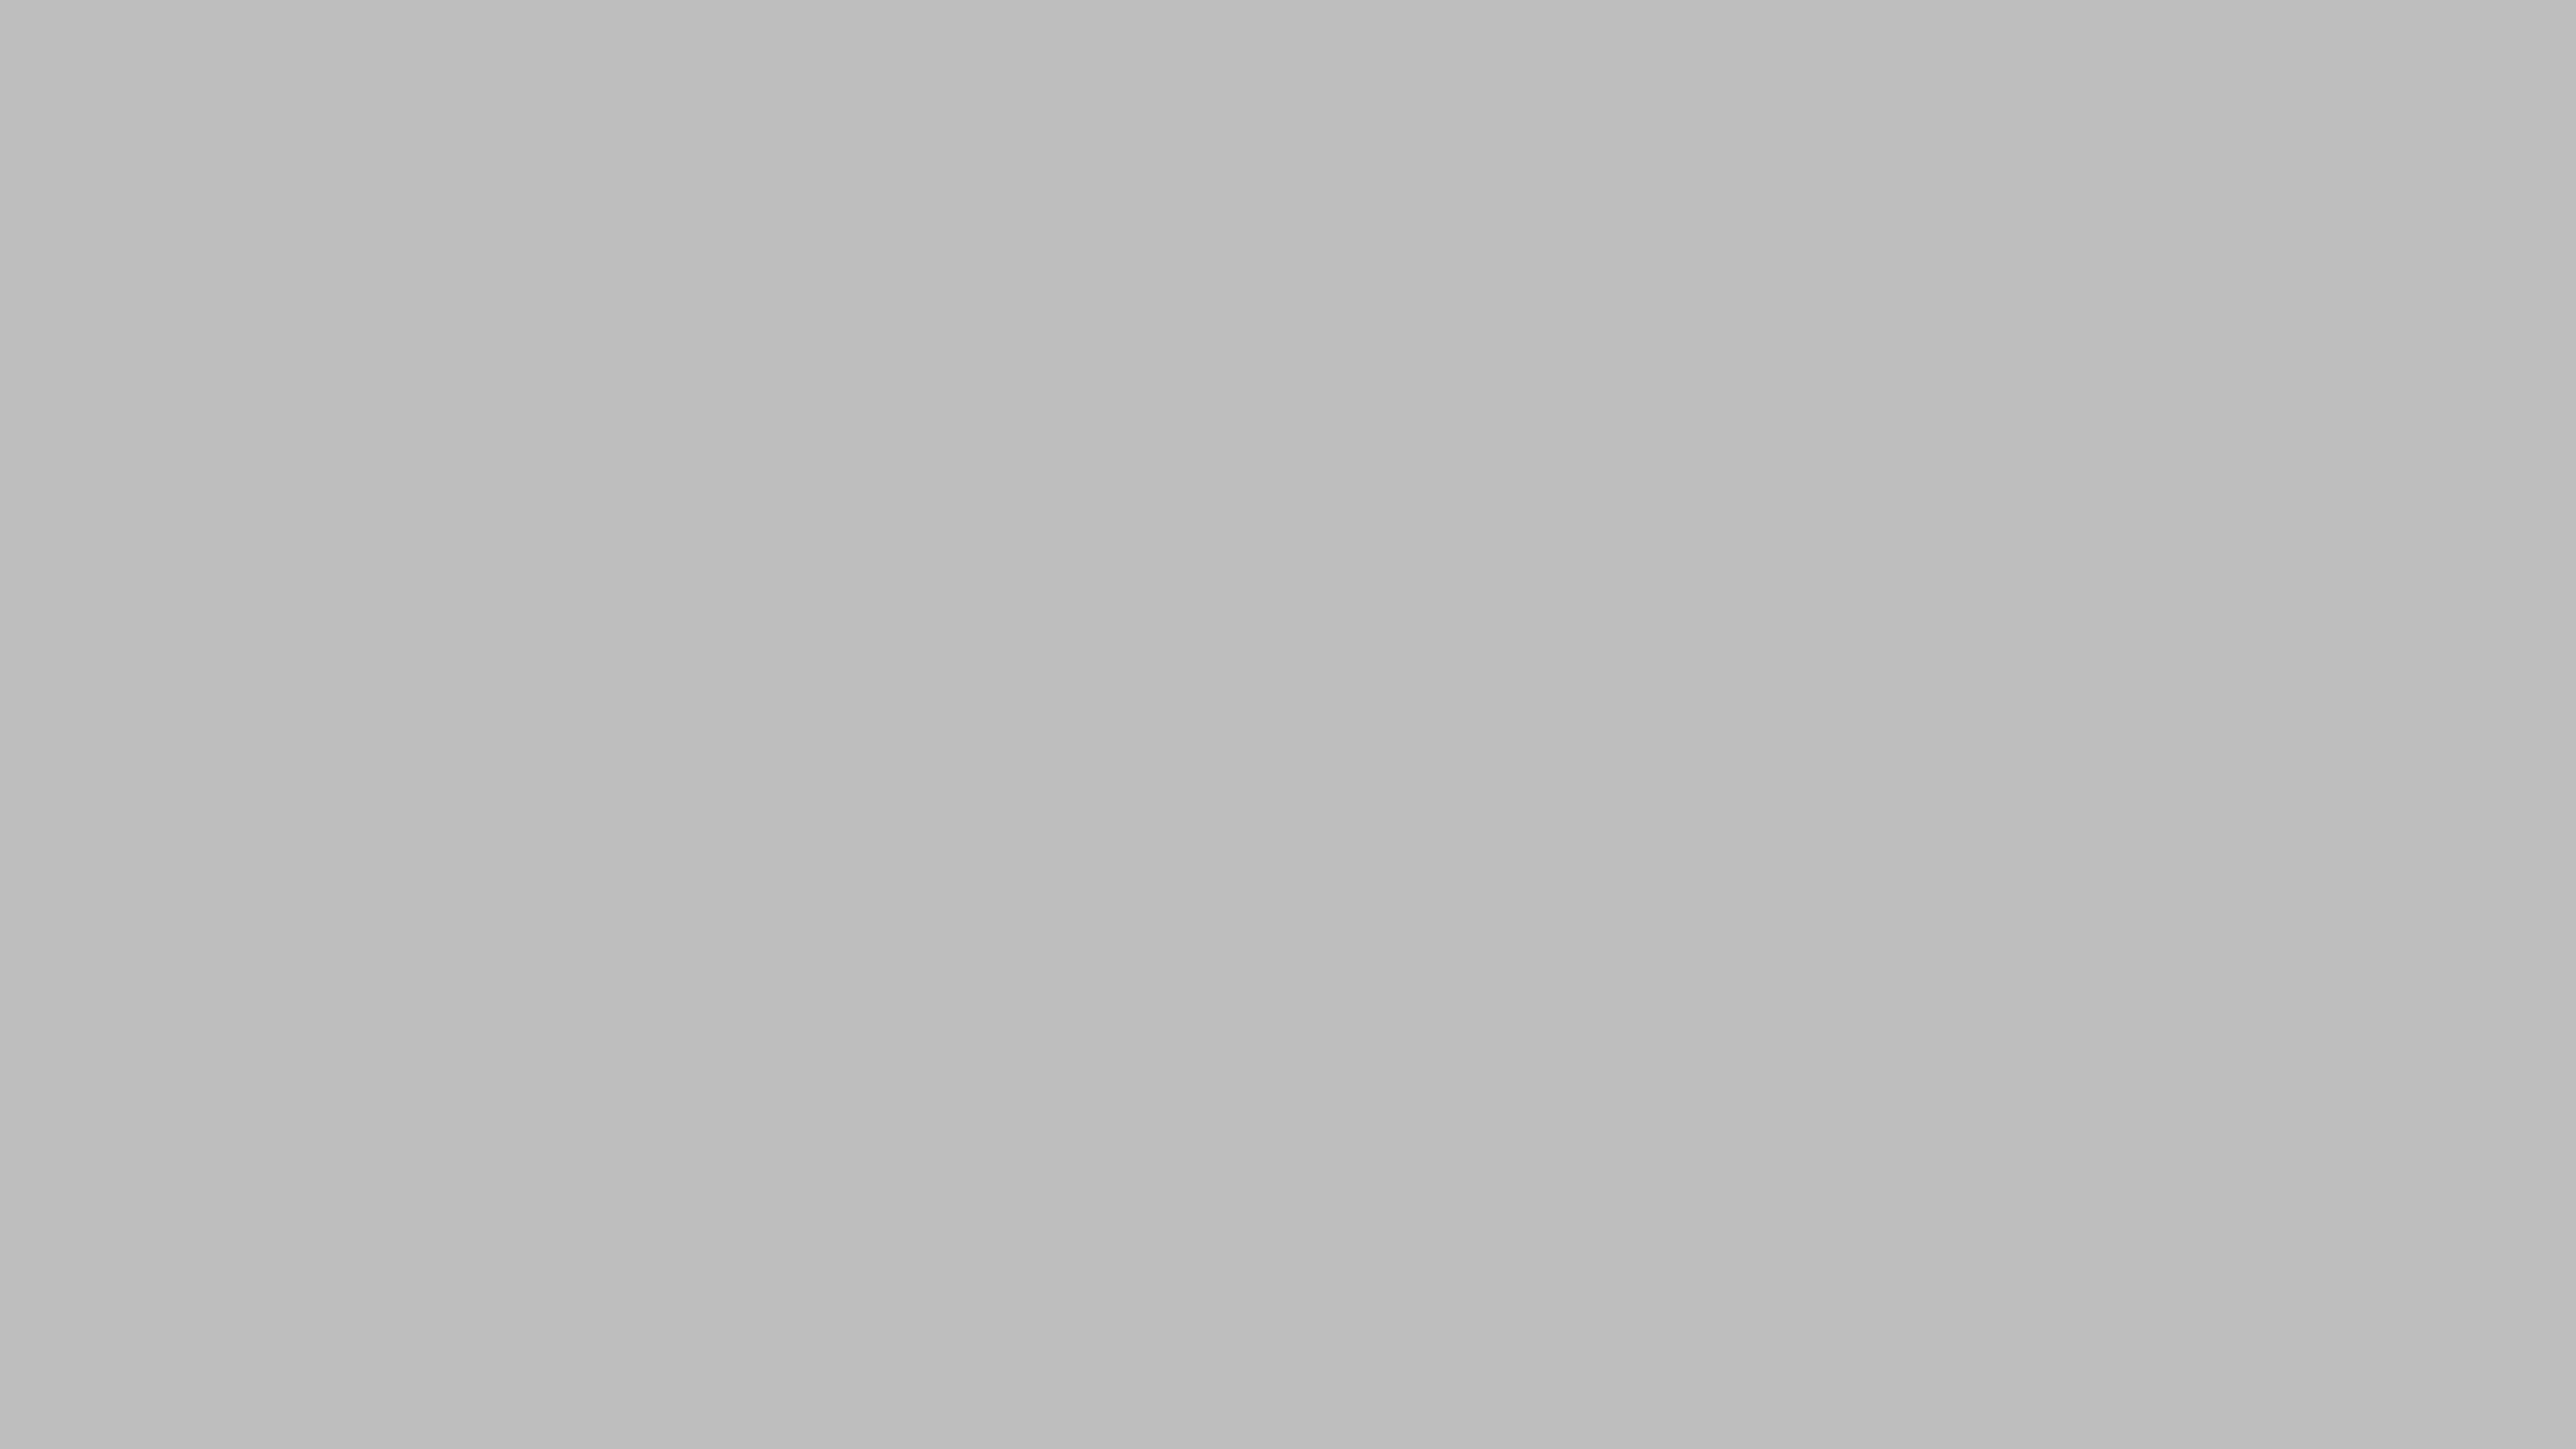 7680x4320 Gray X11 Gui Gray Solid Color Background